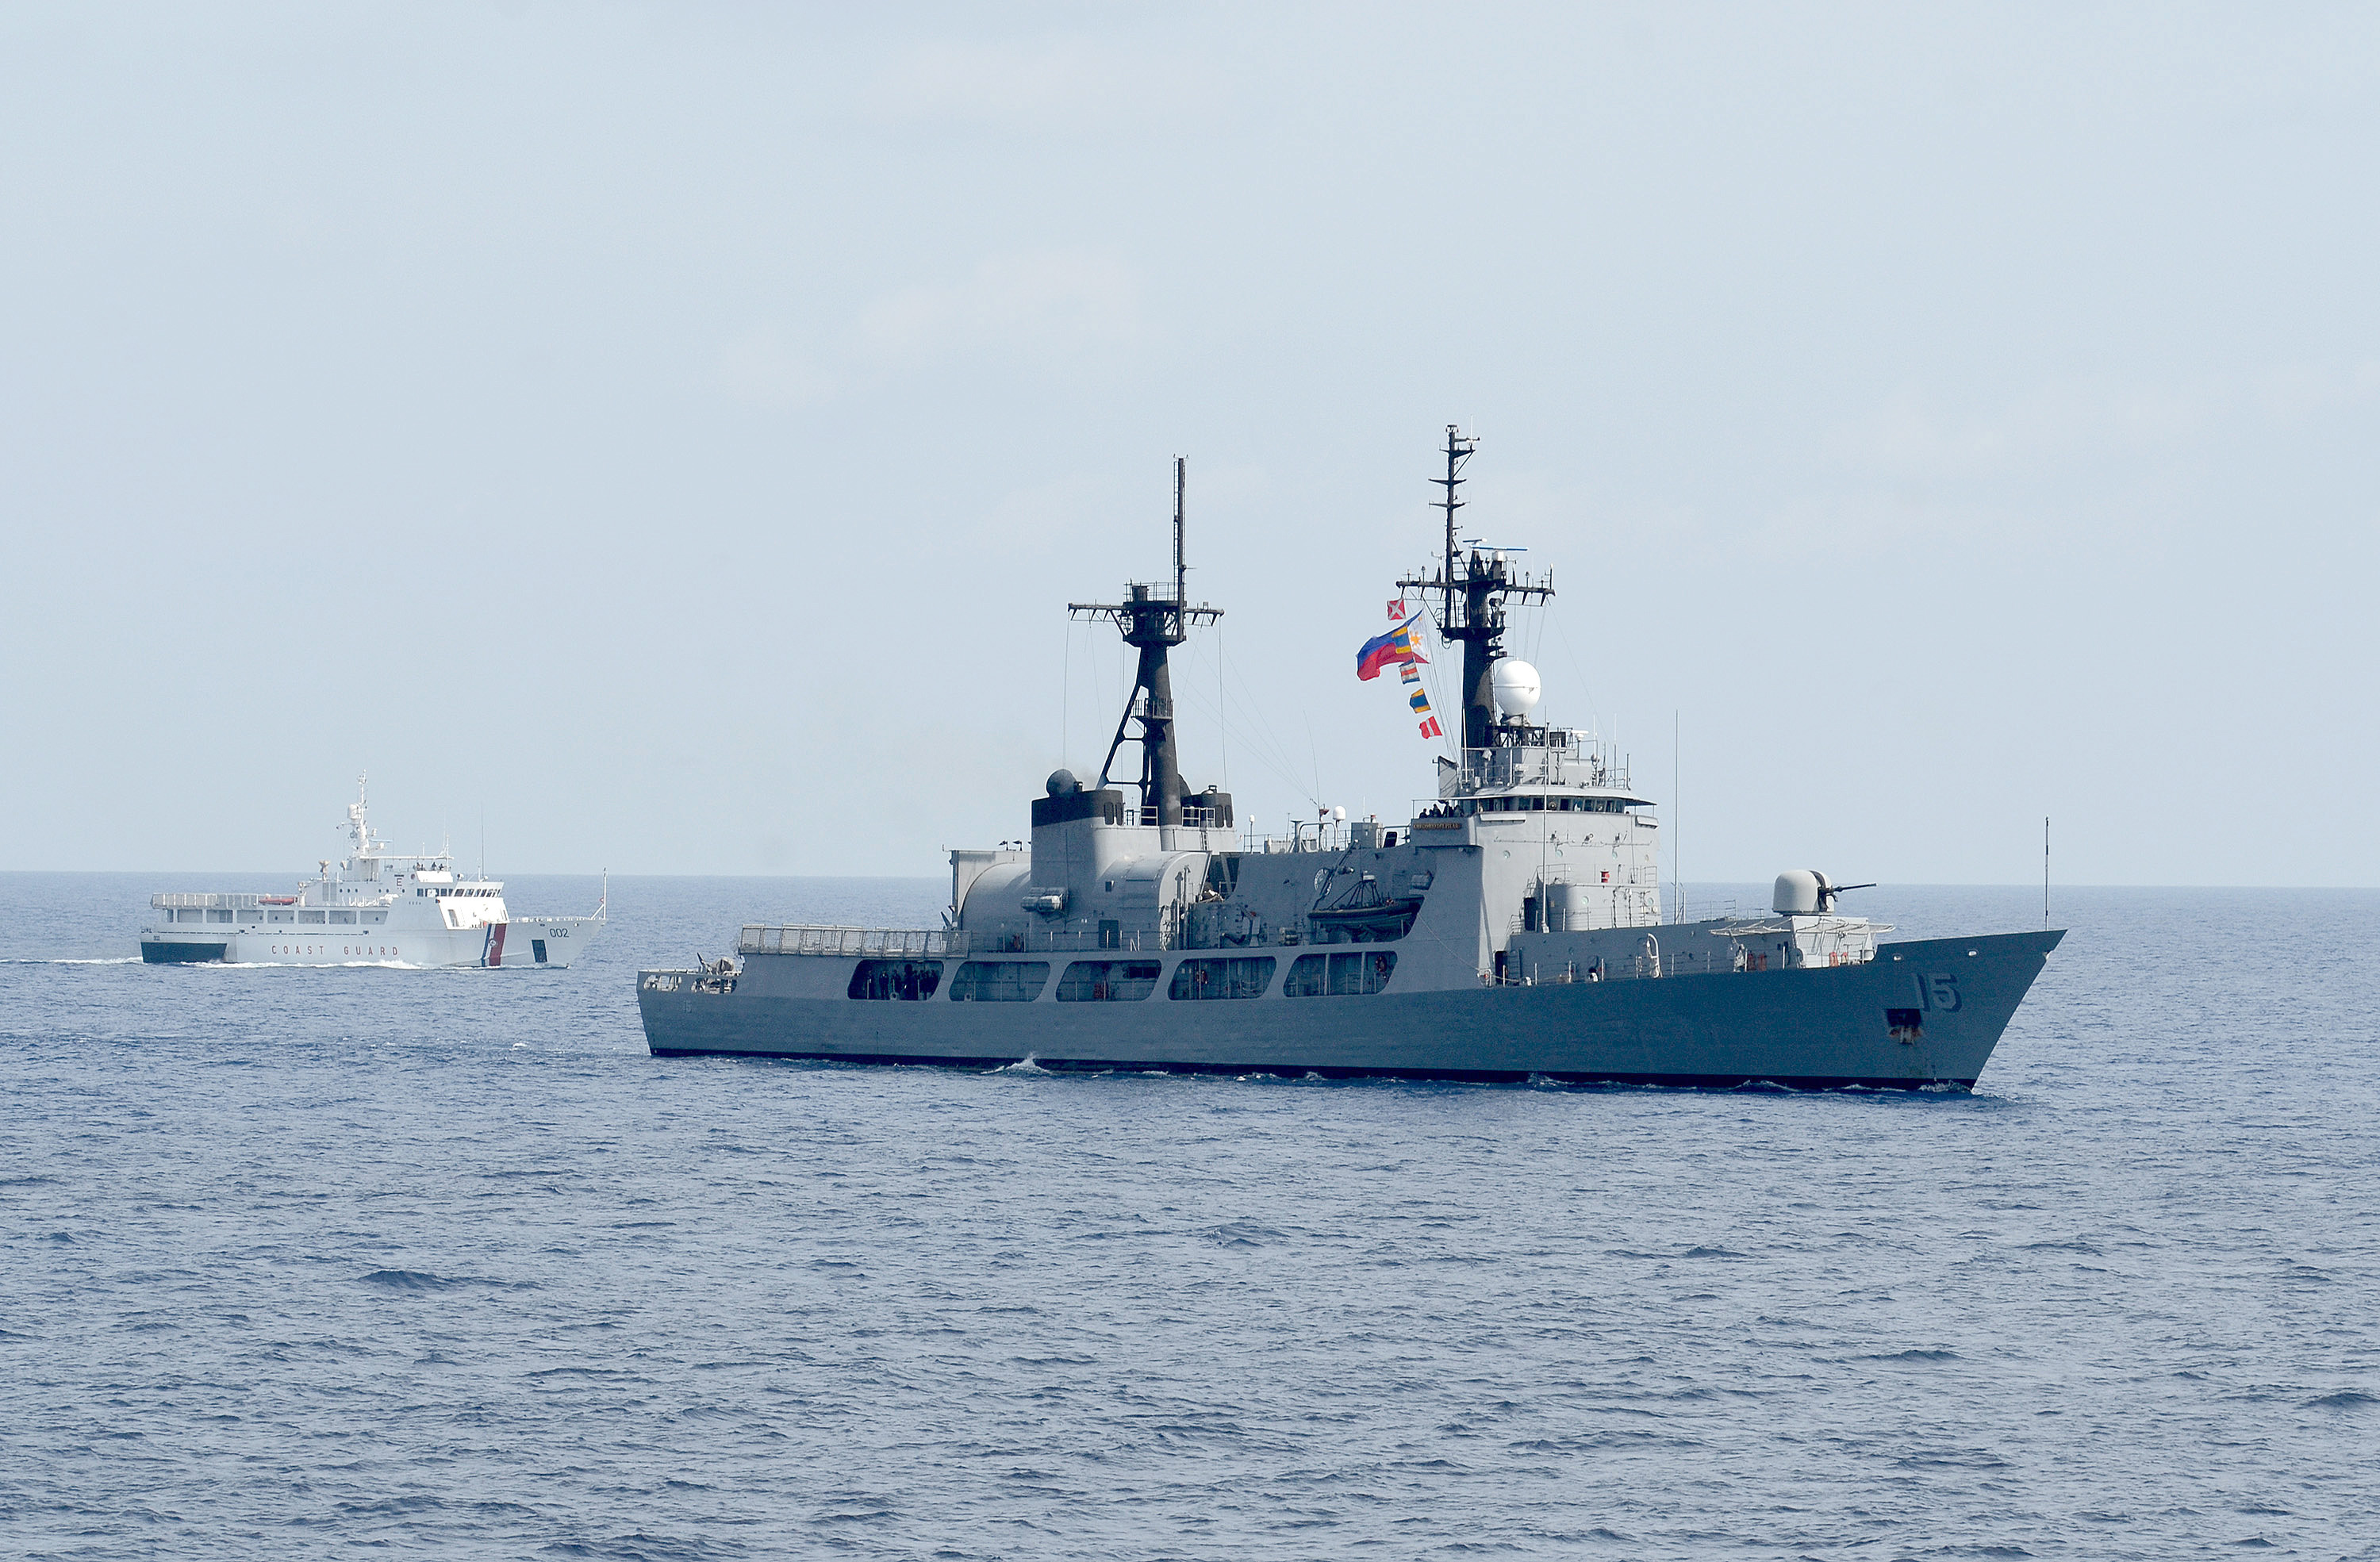 The Philippine frigate Gregorio del Pilar transits with a US Coast Guard vessel in the background.